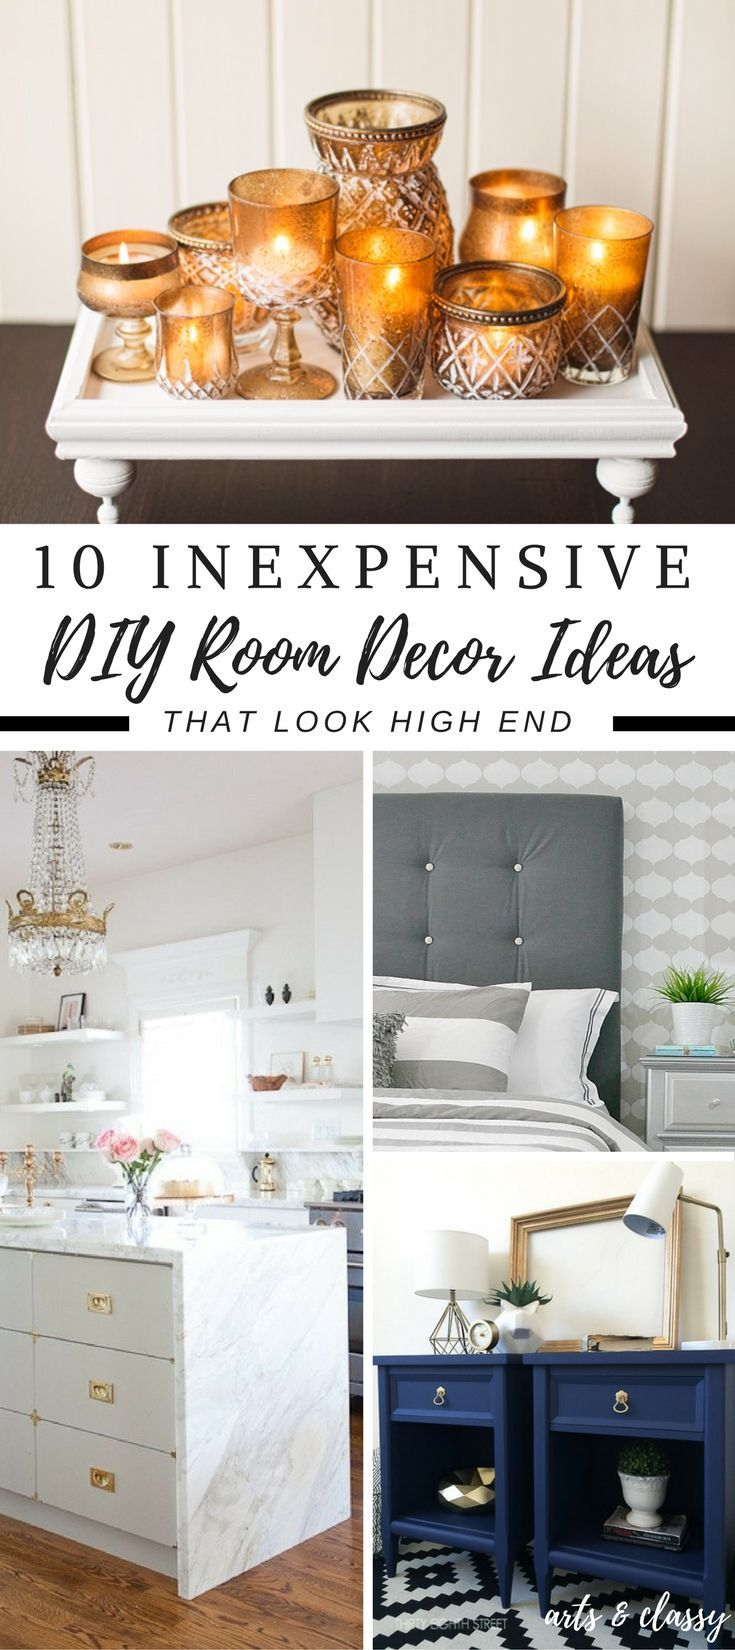 10 Inexpensive DIY Room Decor Ideas You Can Easily Make and that look high-end!